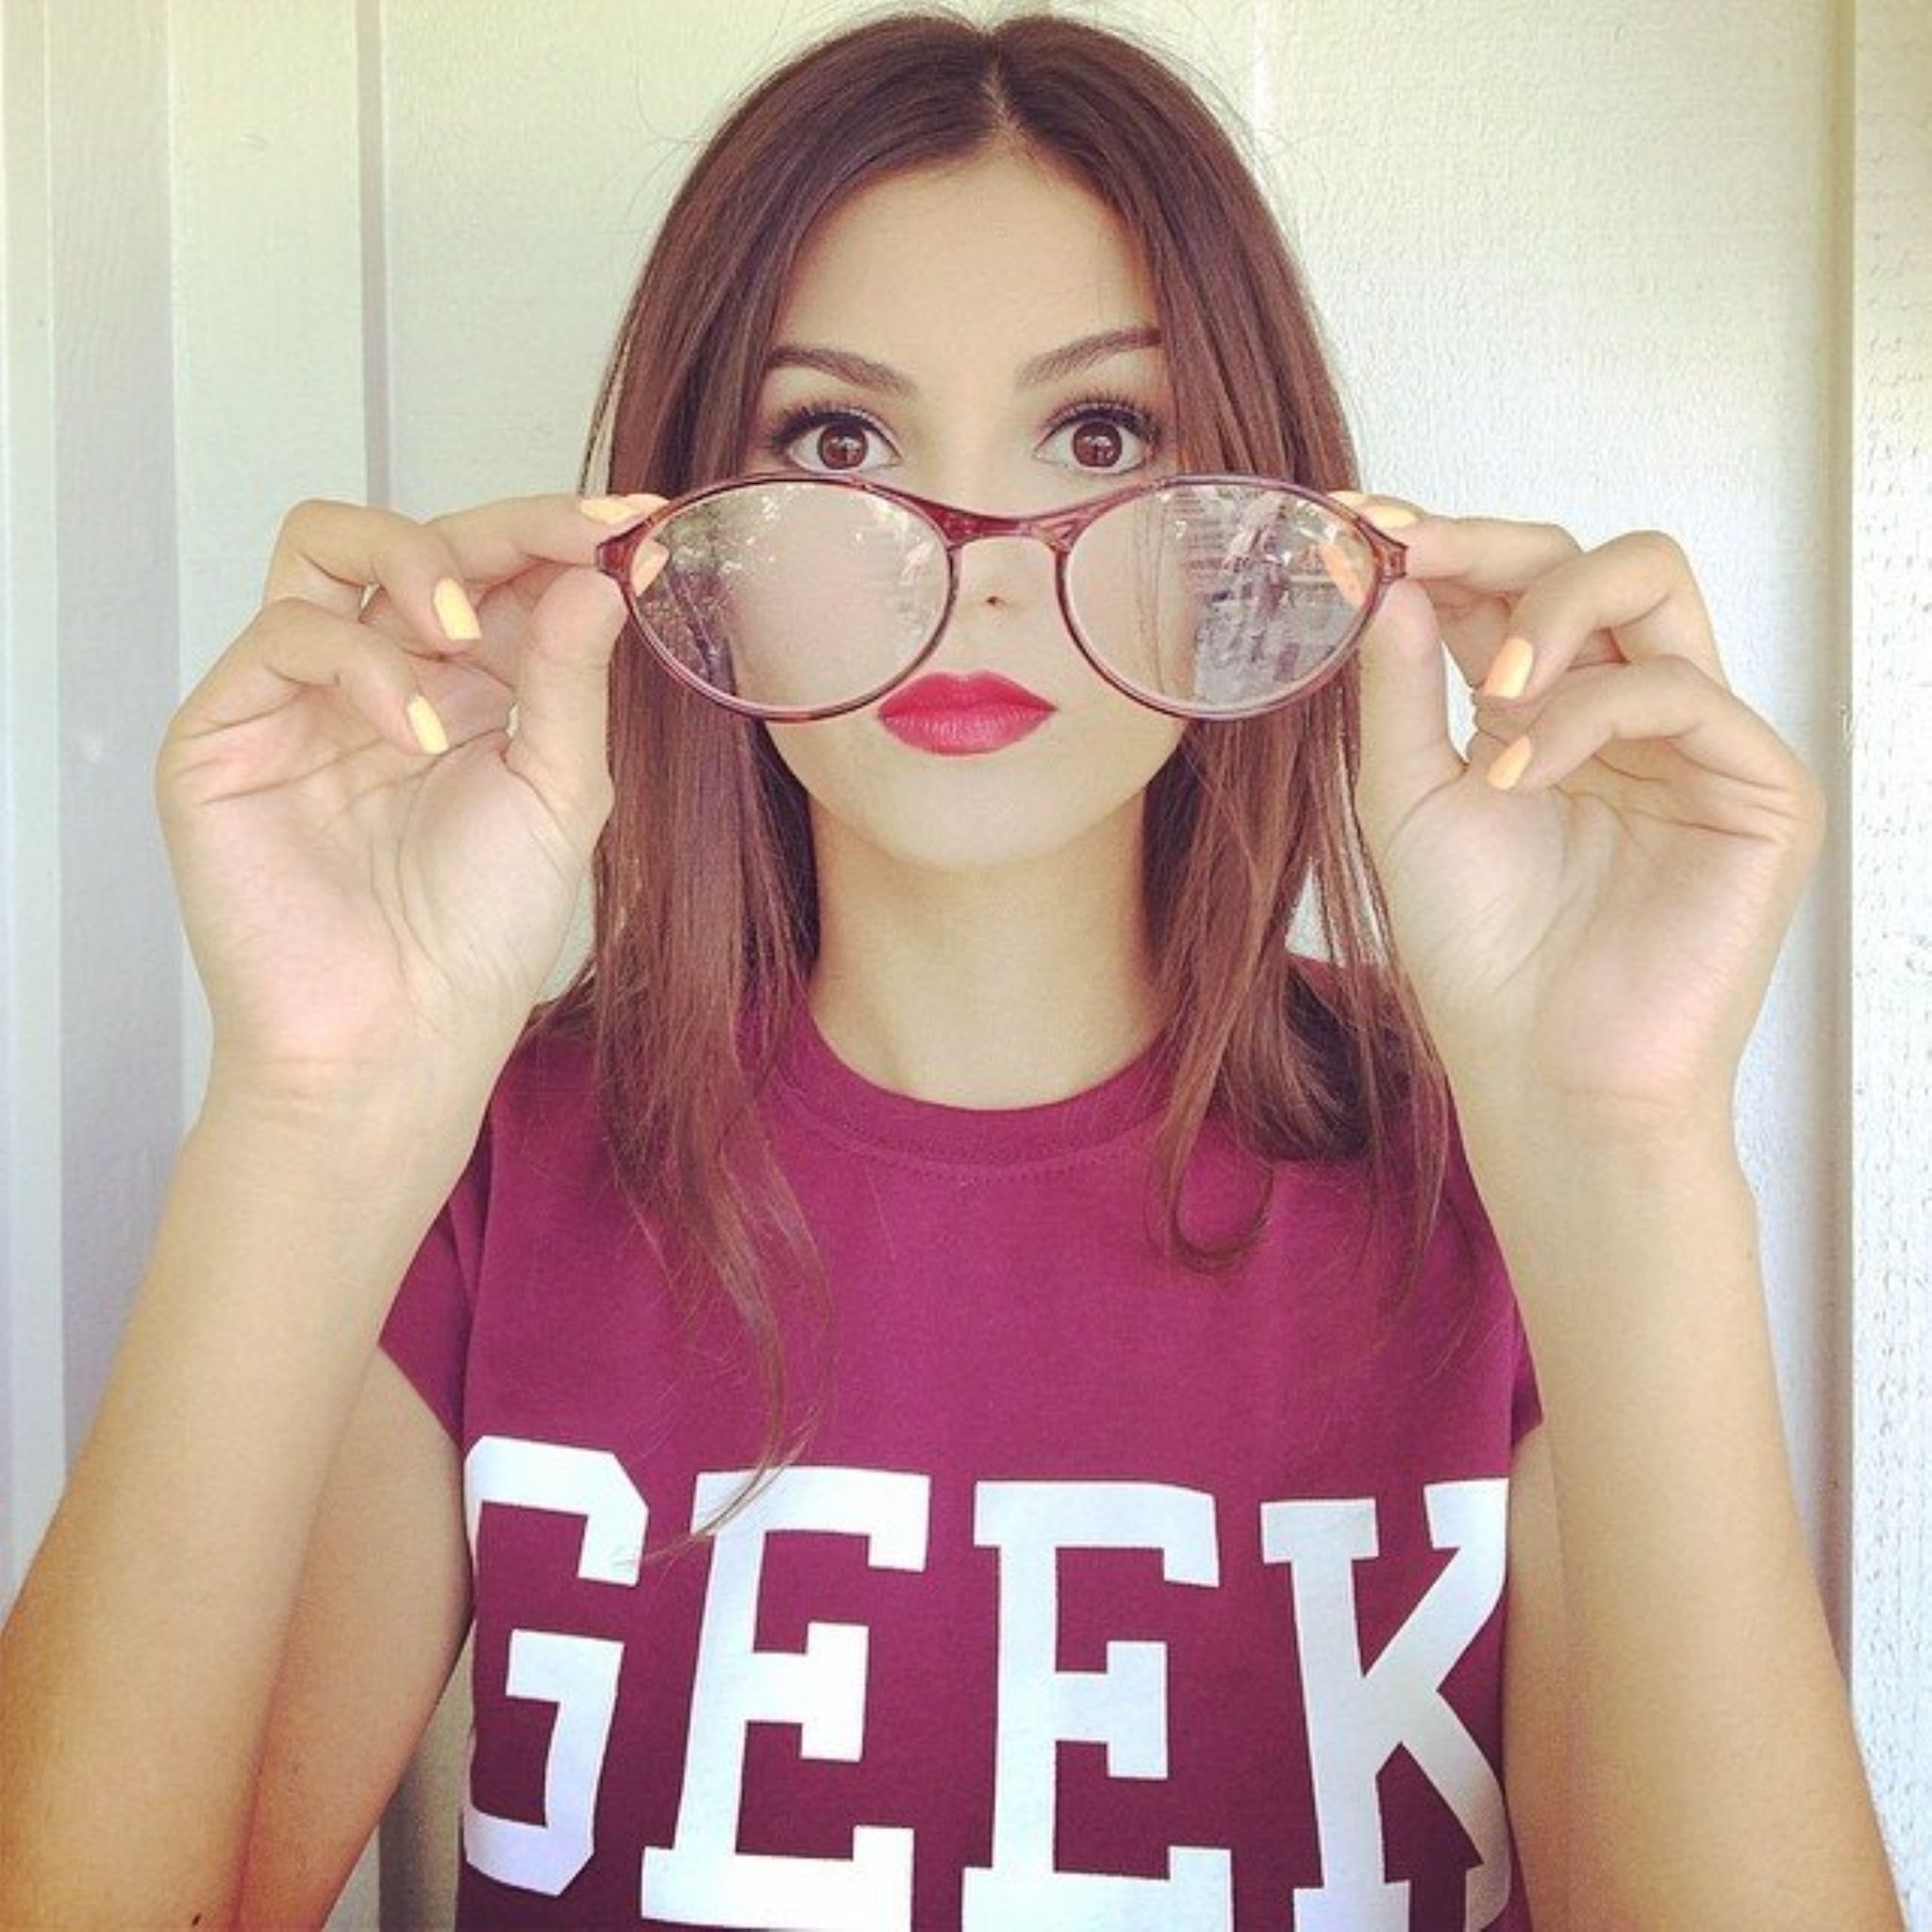 Get your geek on.  by Victoria Justice